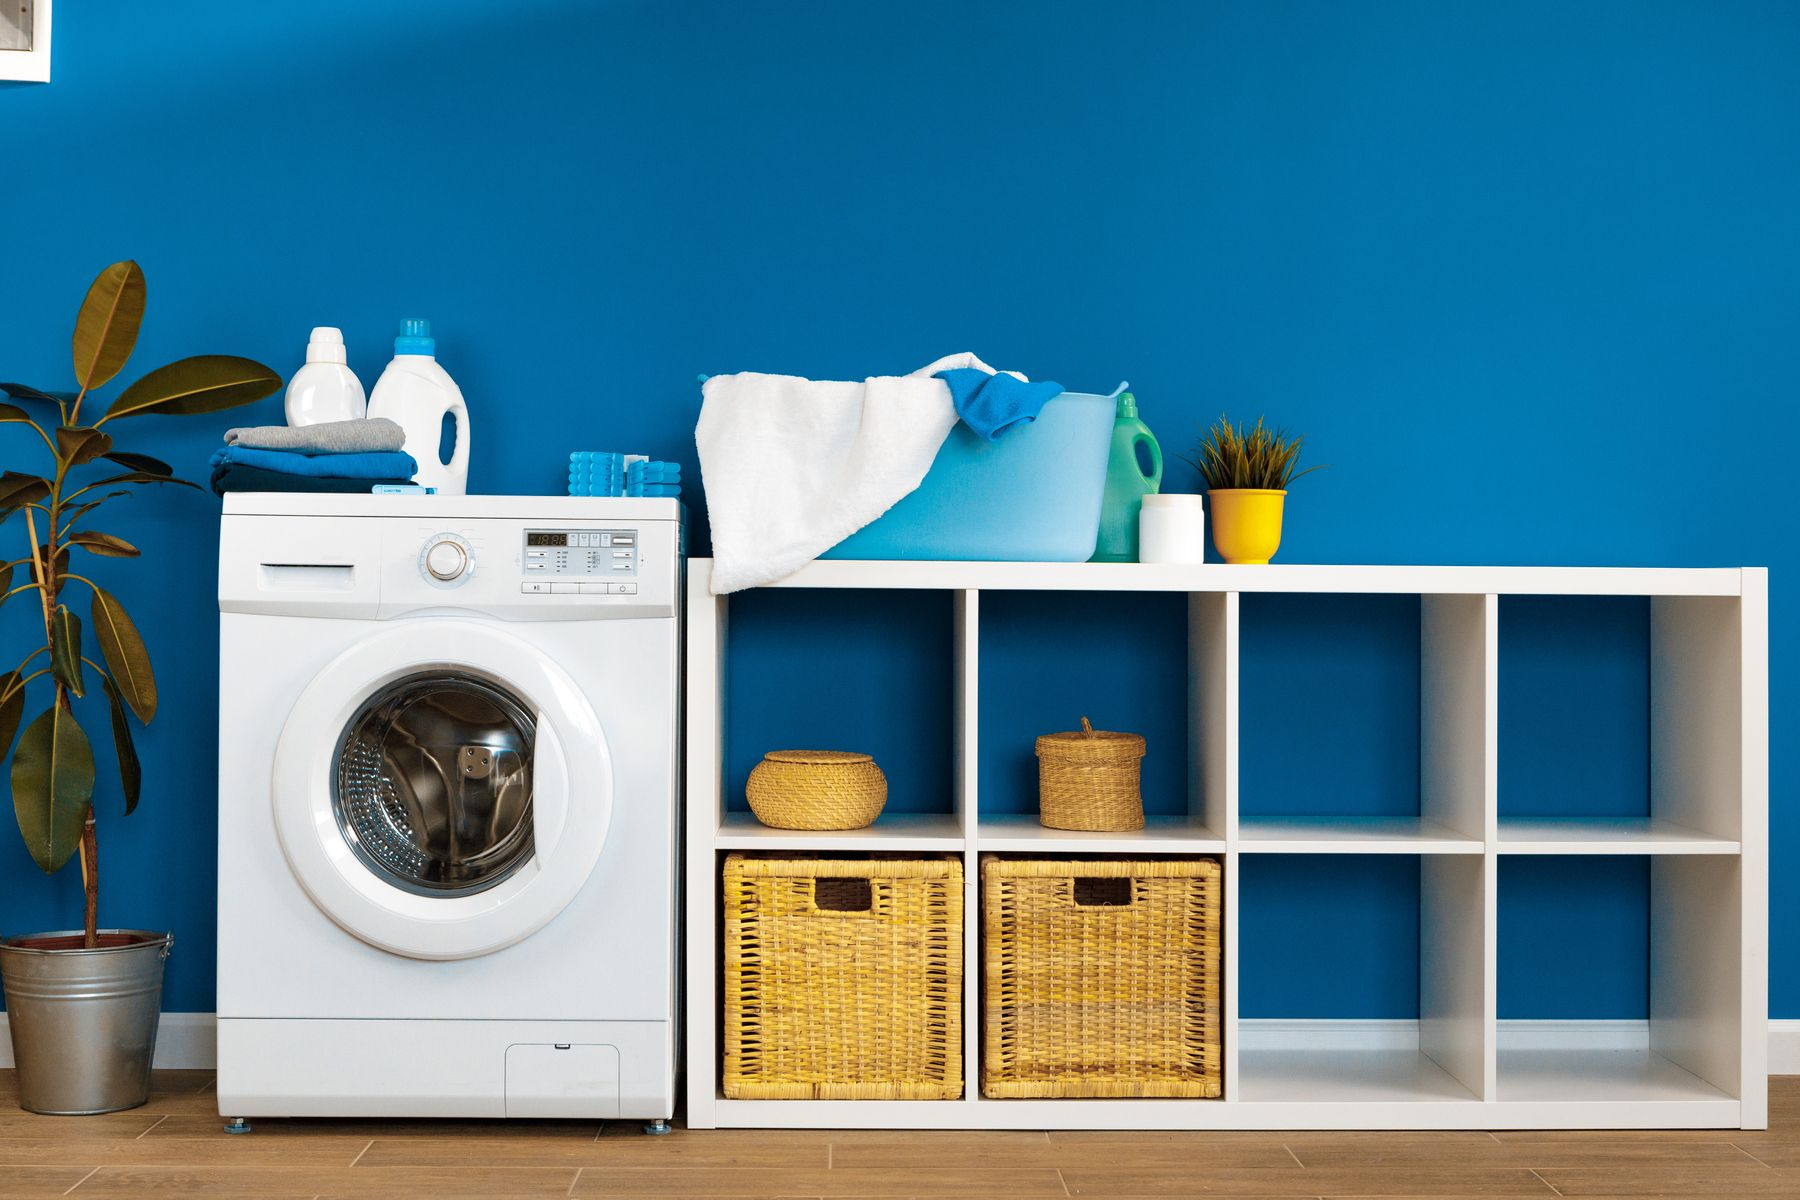 Tips to Keep In Mind While Drying Your Clothes In A Washing Machine shutterstock 1722761533